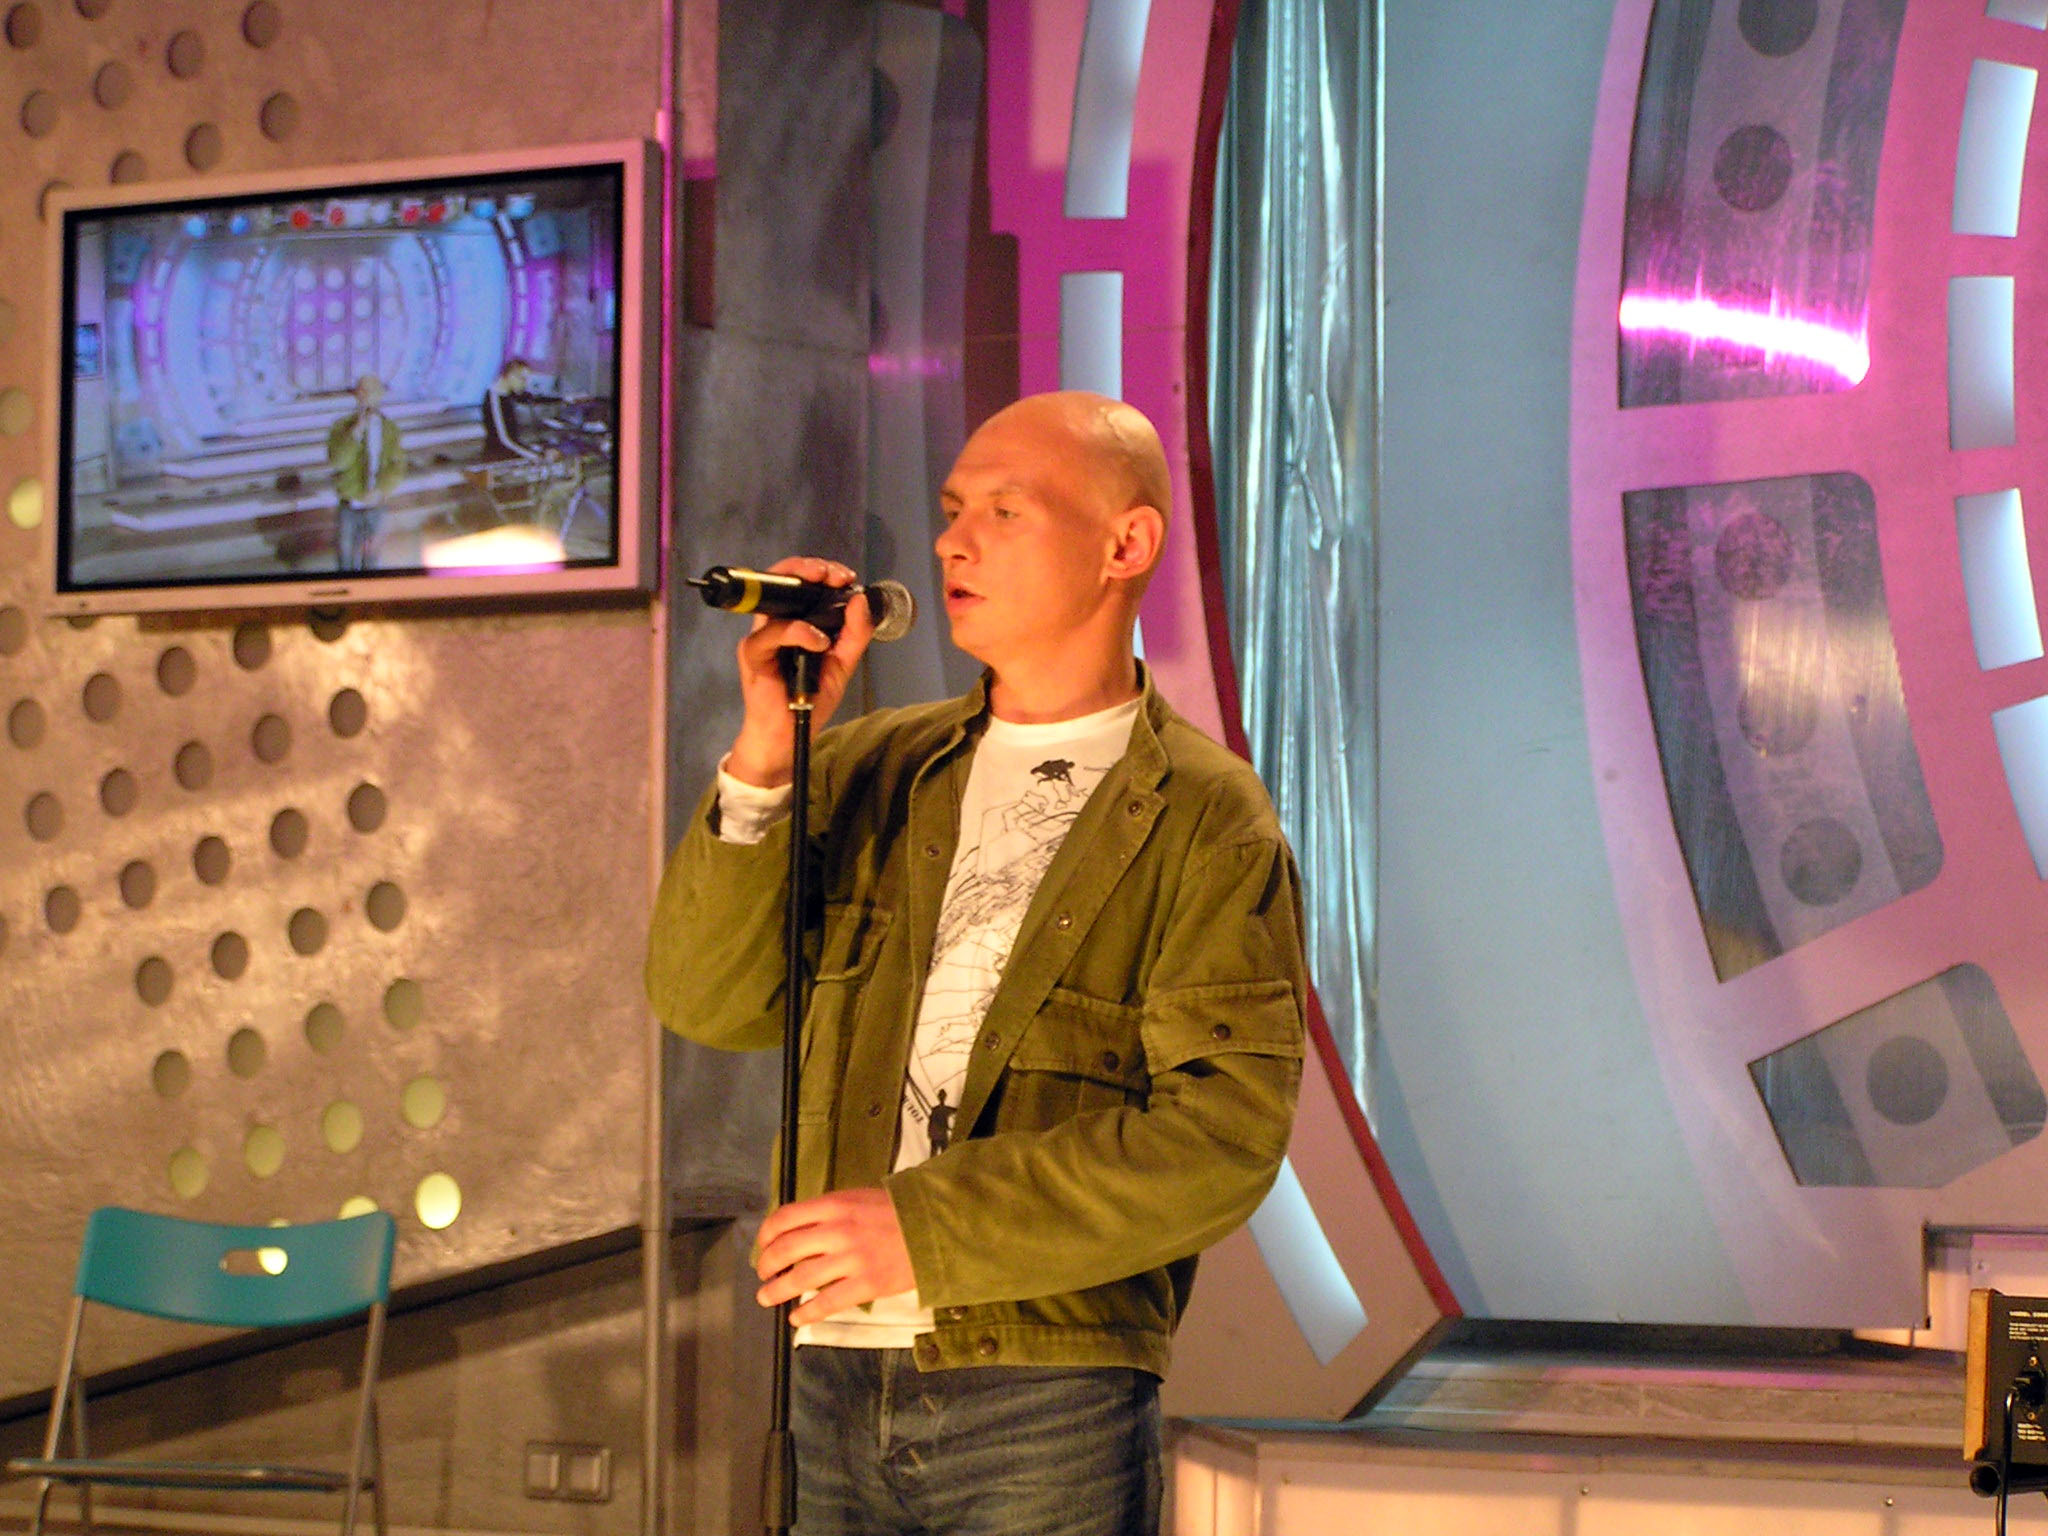 OR_Arrival_MTV_Total Show_2004.jpg